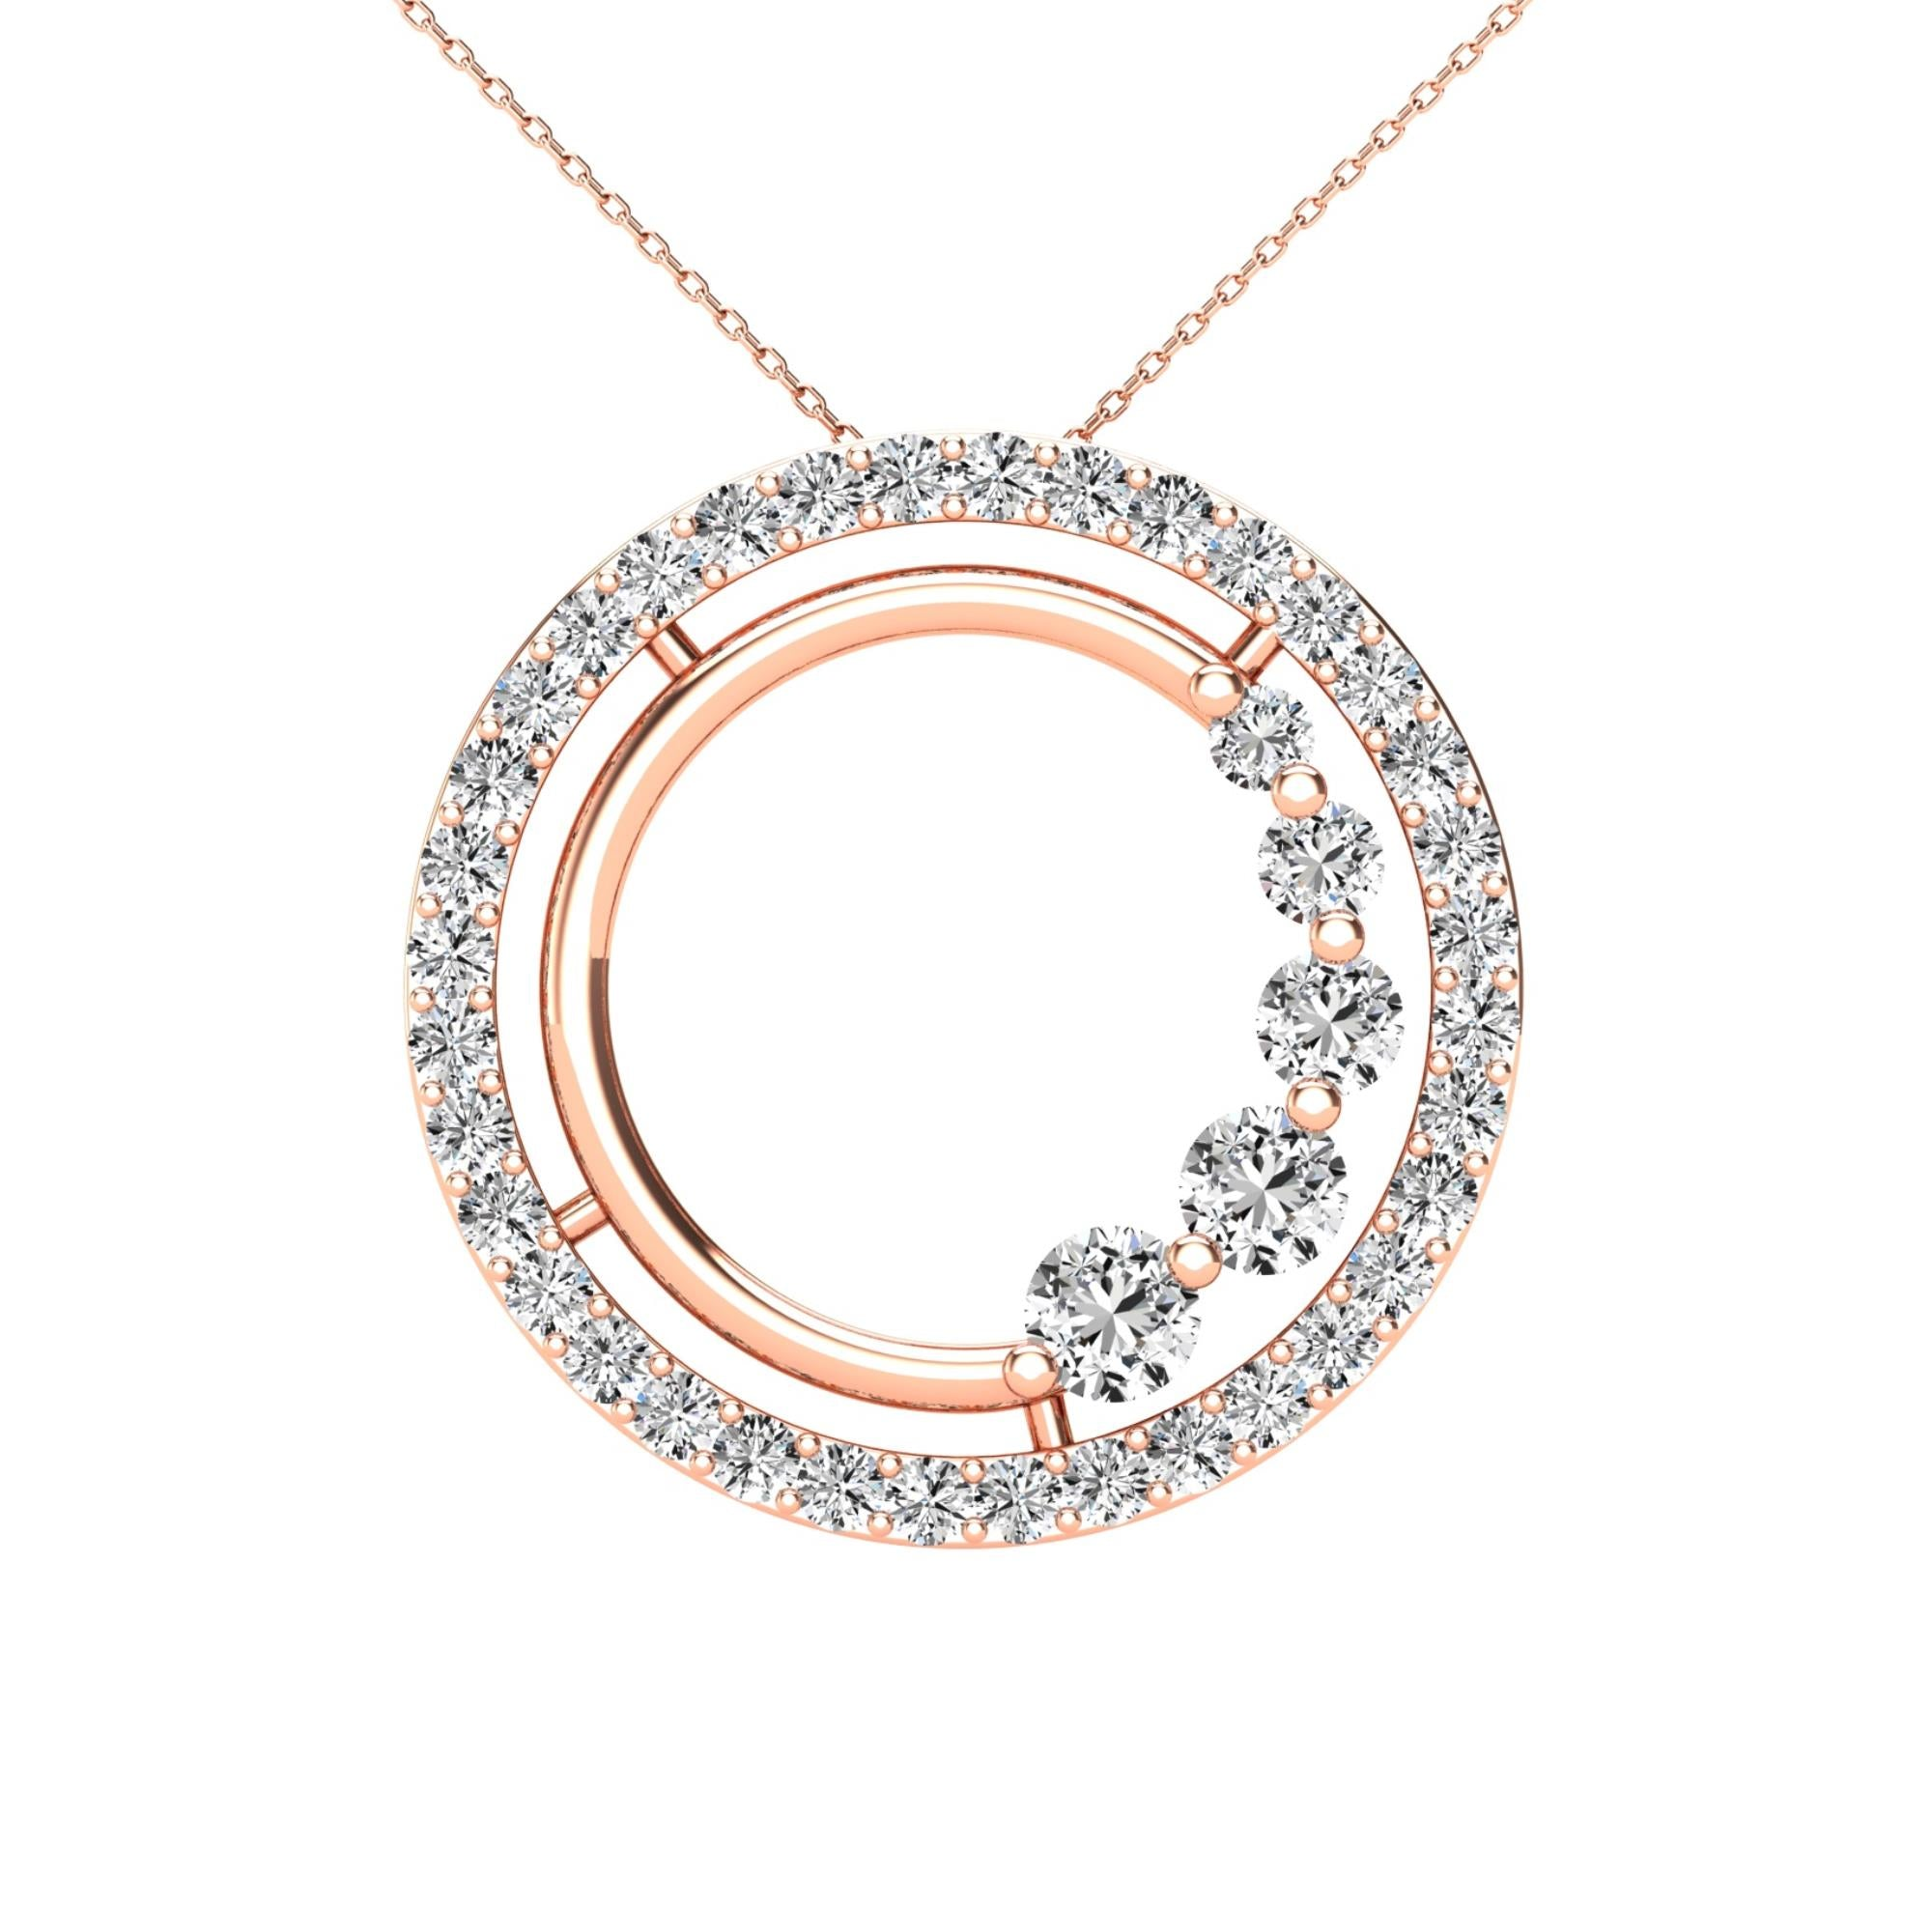 14Kt Rose Gold 0.40 Ct Genuine Natural Diamond Open Circle Design Pendant Necklace